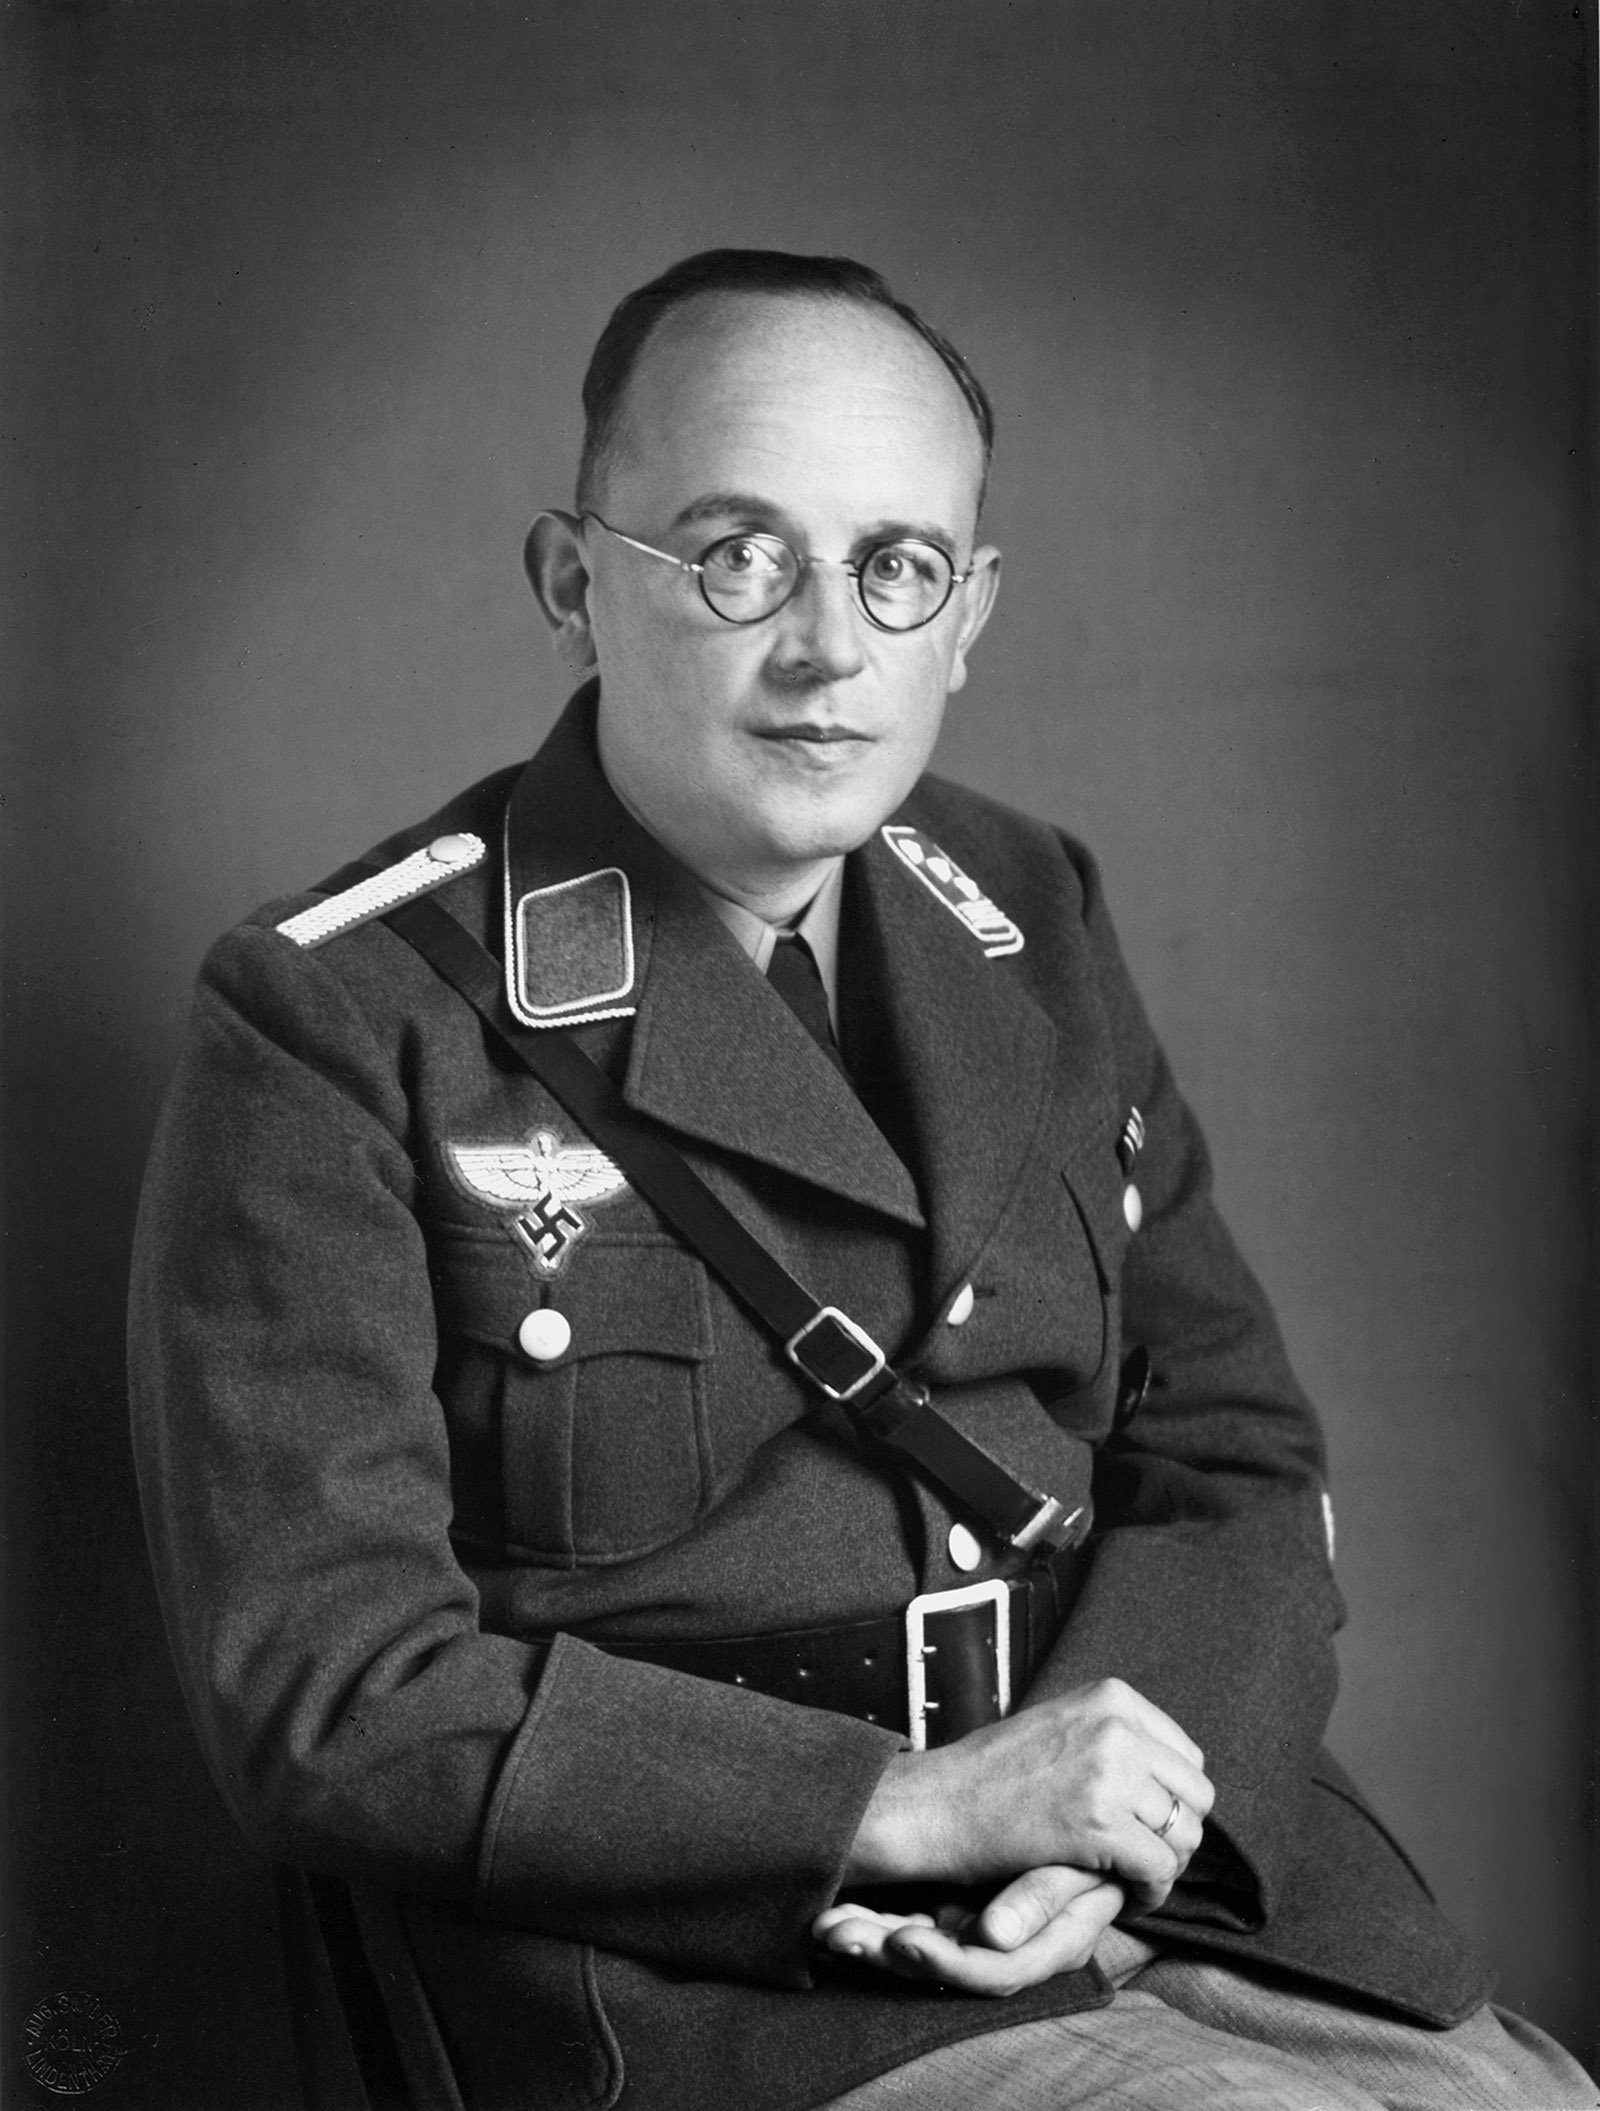 'National Socialist,' circa 1935; photograph by August Sander from his People of the Twentieth Century. A new collection of his portraits, August Sander: Persecuted/Persecutors, will be published by Steidl this fall.